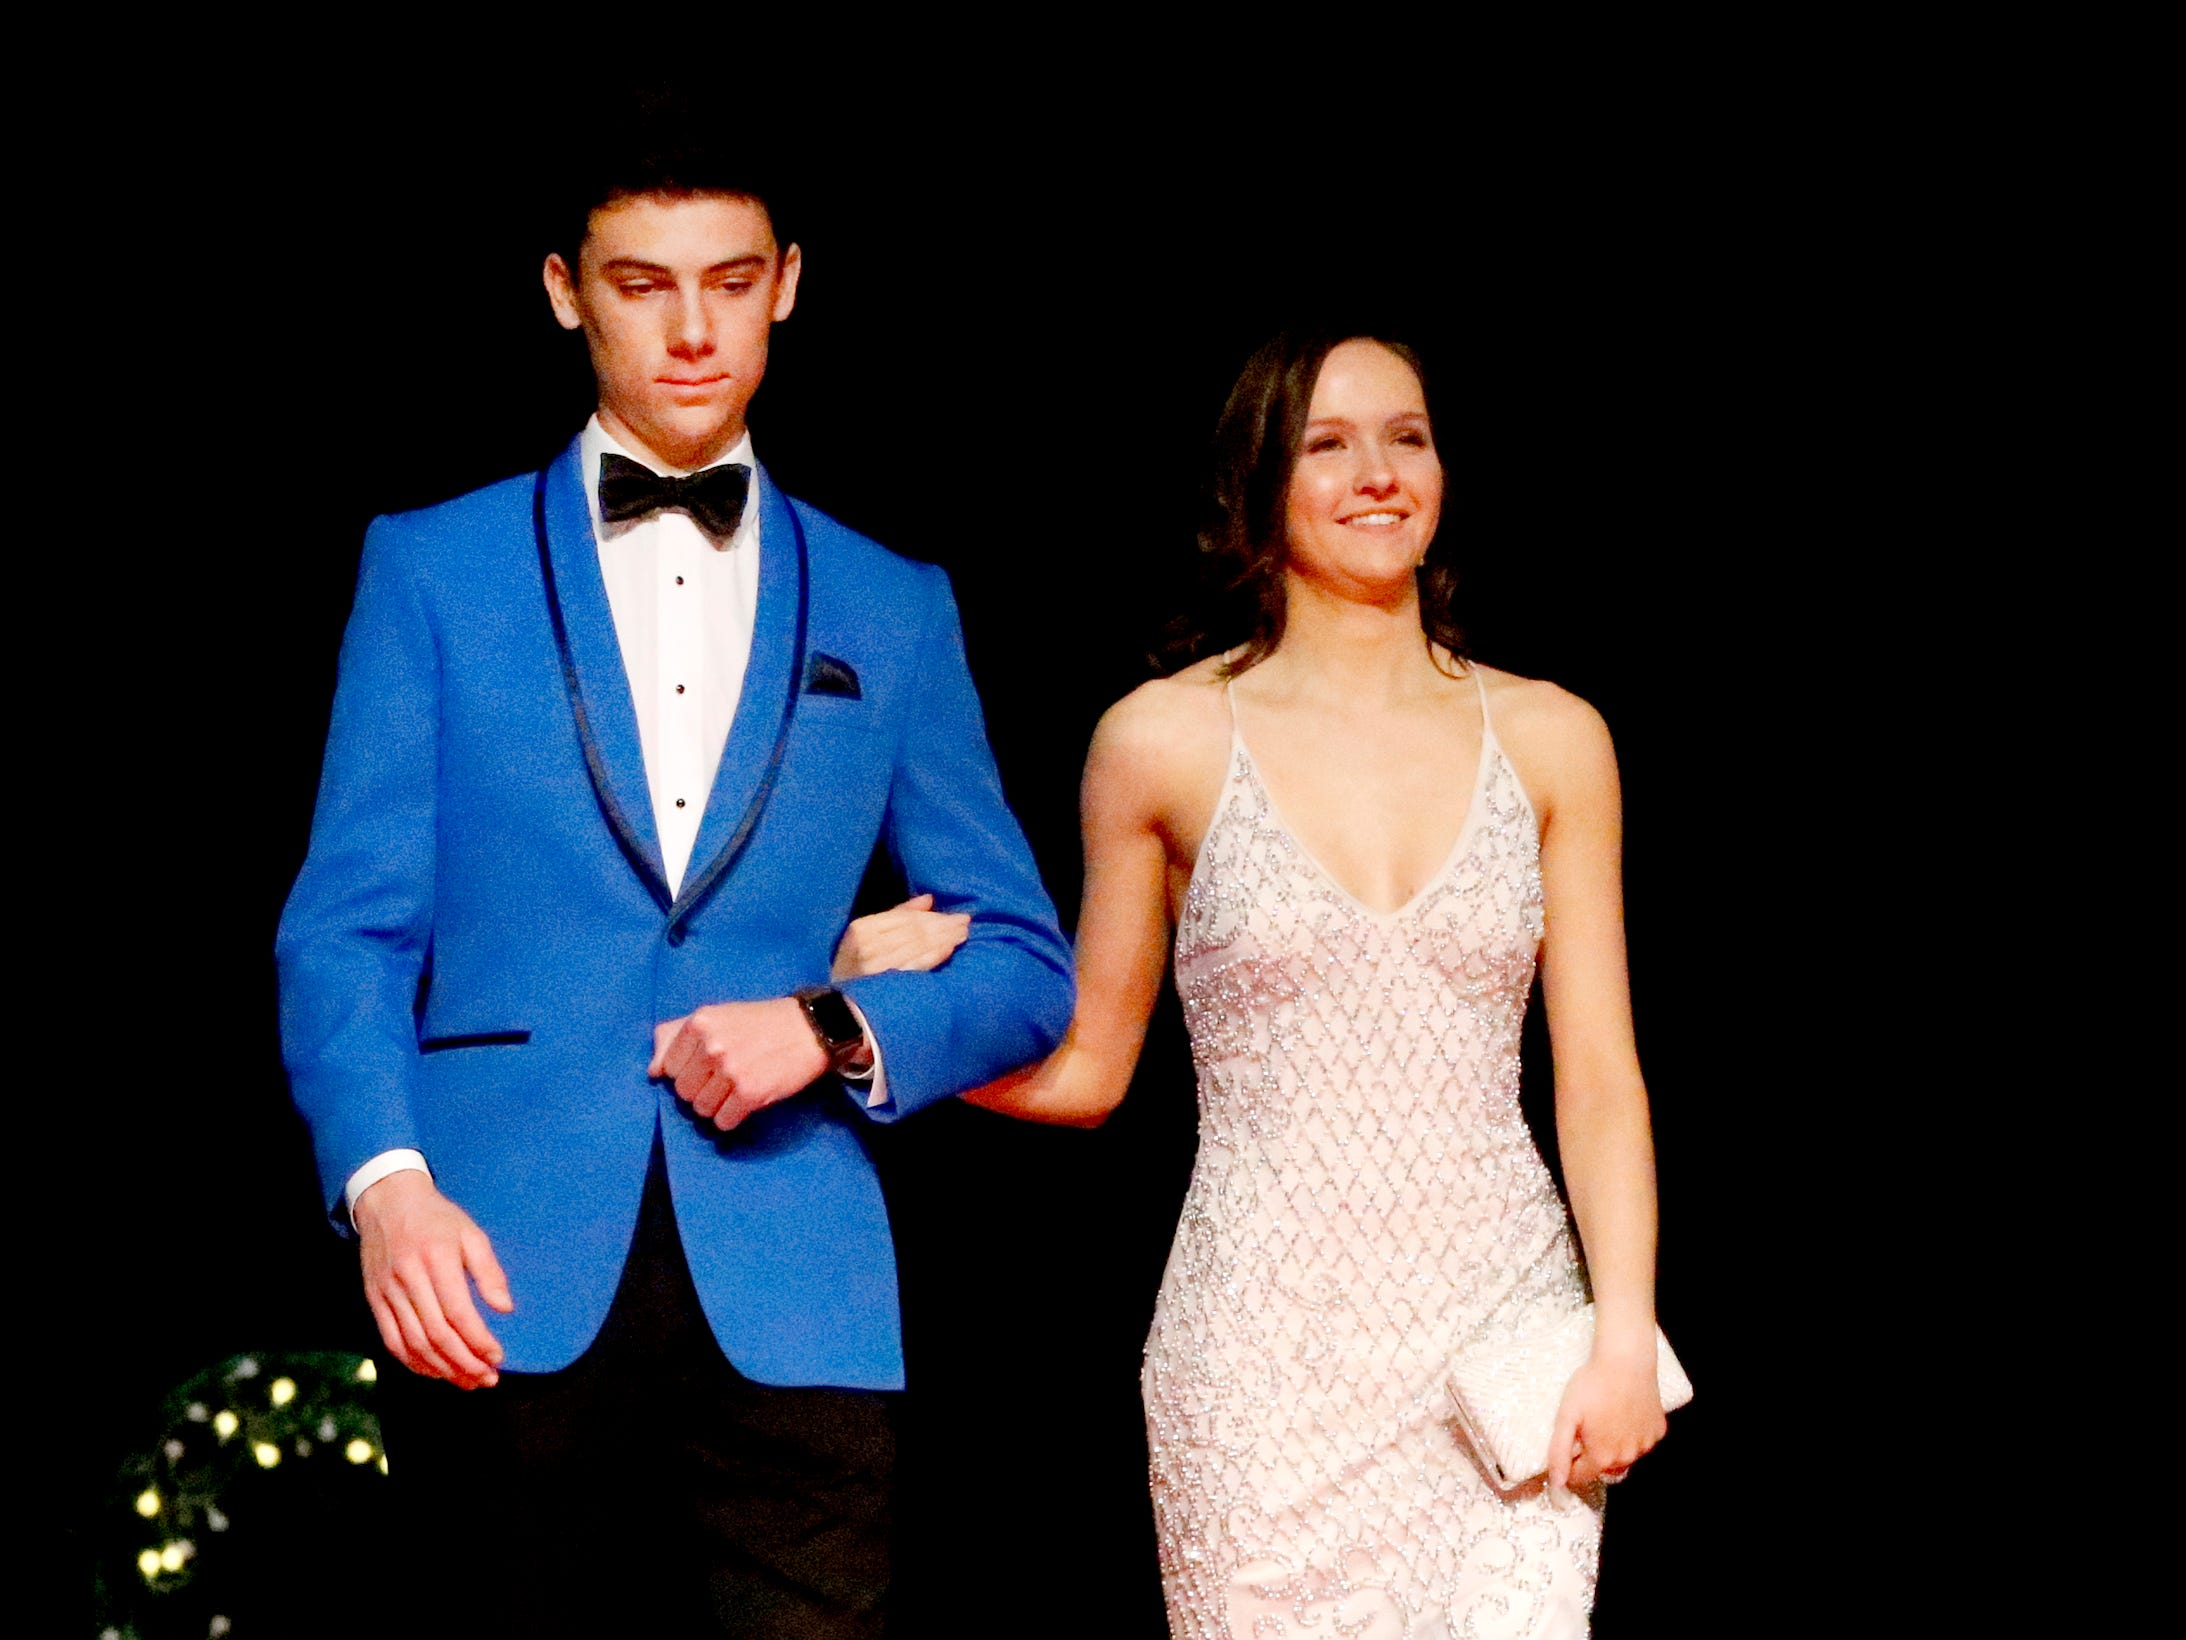 Adam Lalance, left and Lucy Bridges, right show off the latest in prom fashions during the Siegel Prom Fashion show on Thursday, Feb. 14, 2019.